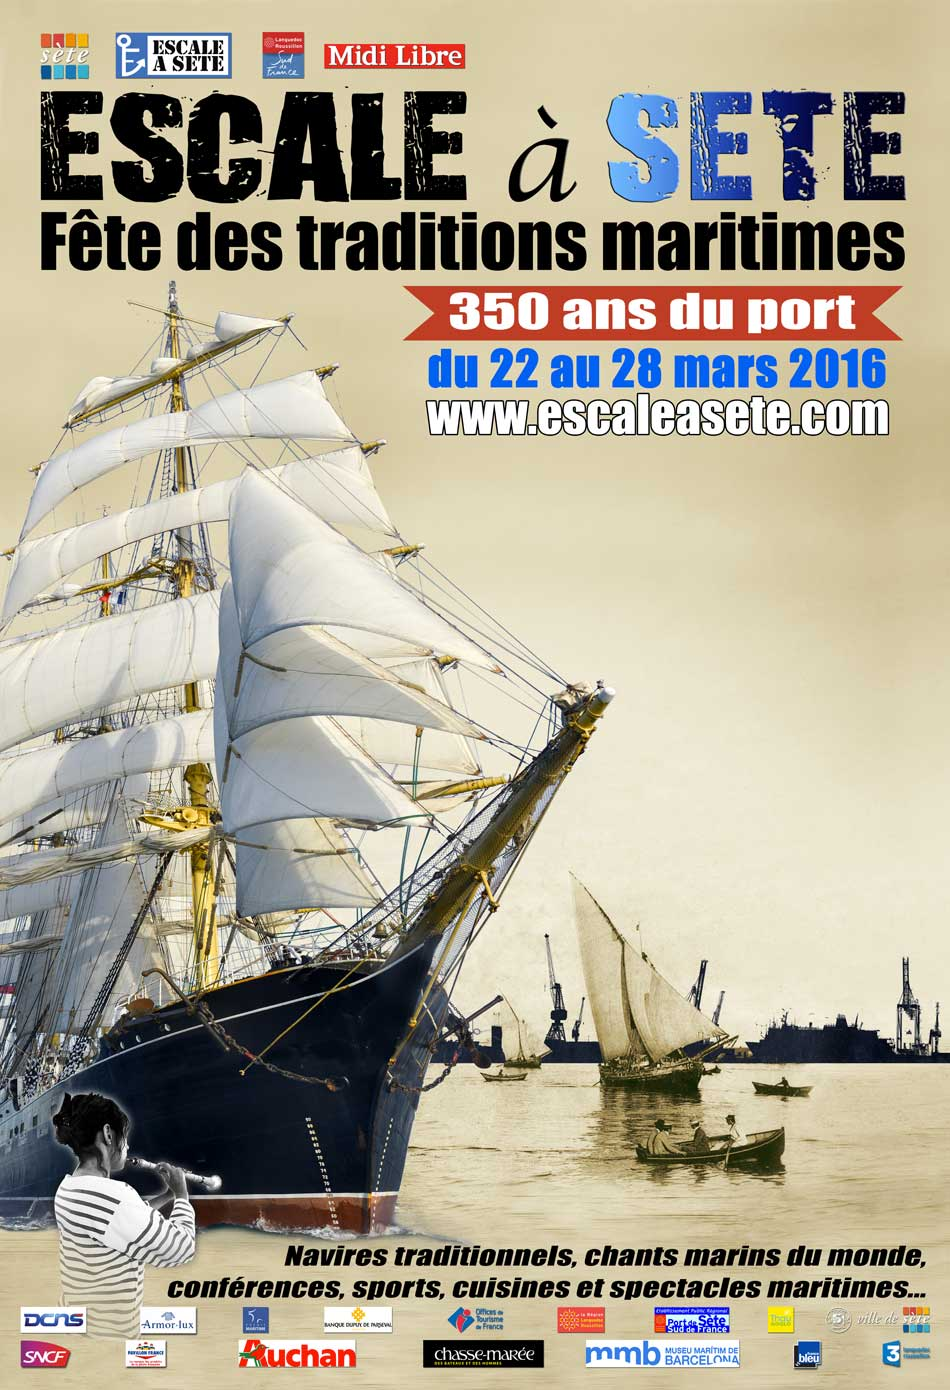 Escale à Sète 2016 traditions maritimes programme et animations